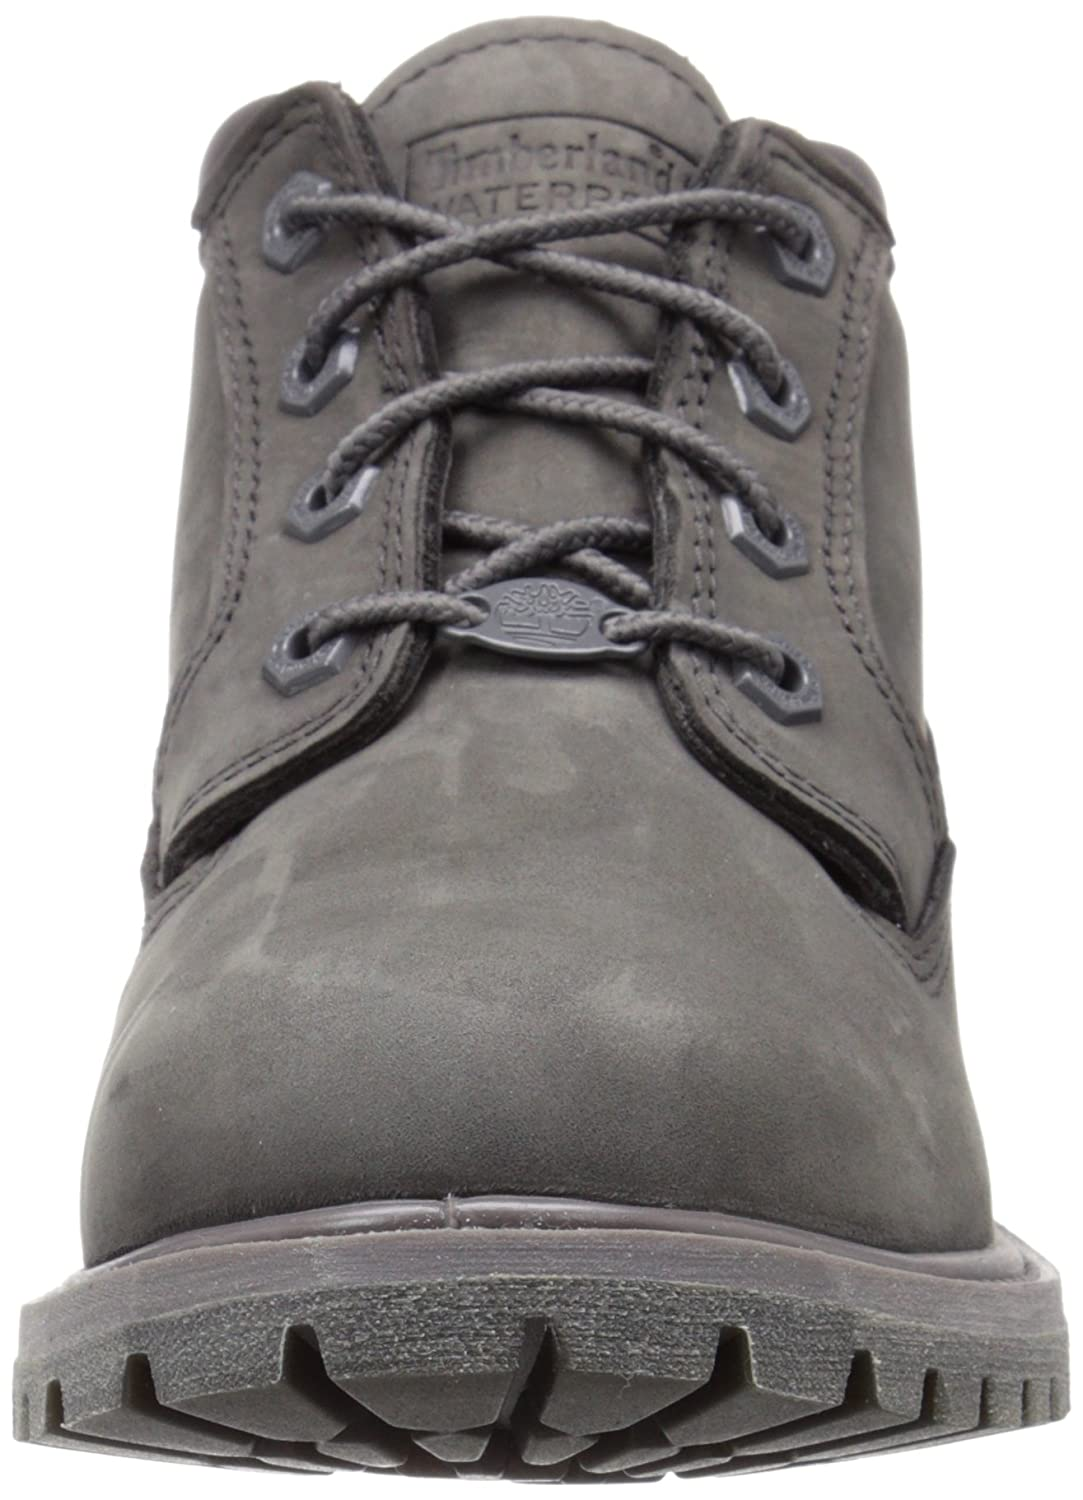 Zapatos Timberland Mujeres Grises xqyPD